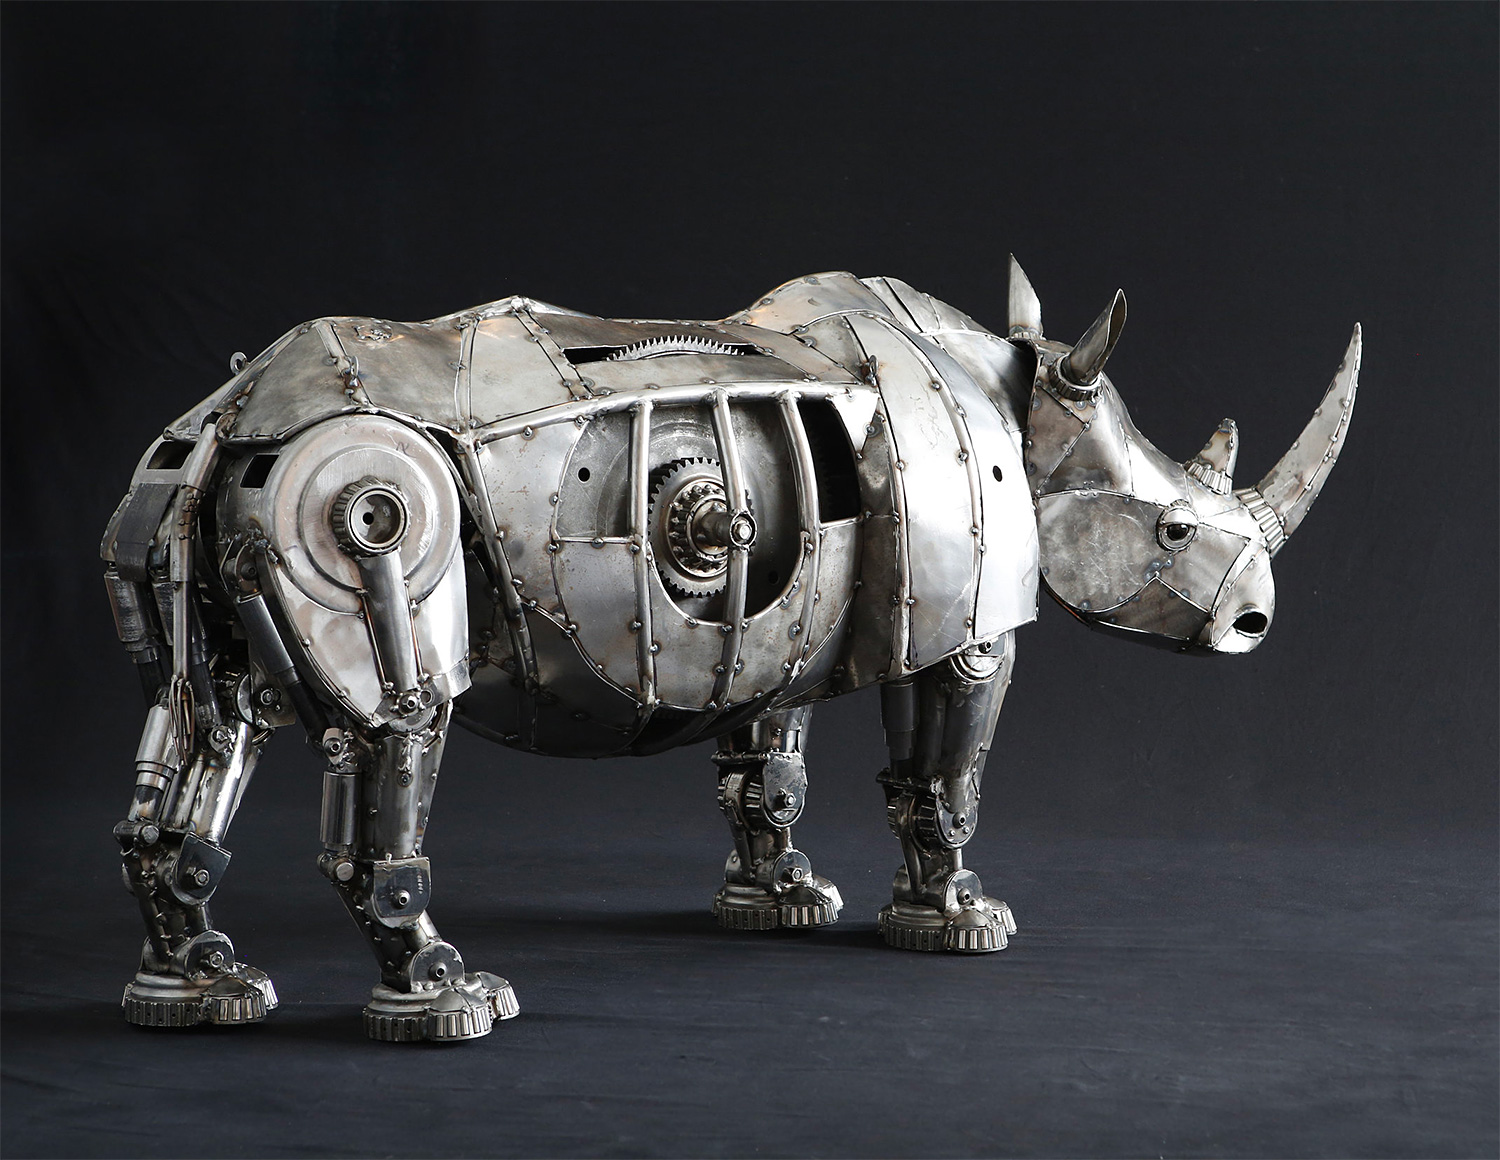 Art Imitates Nature In These Wild Steel Sculptures at werd.com